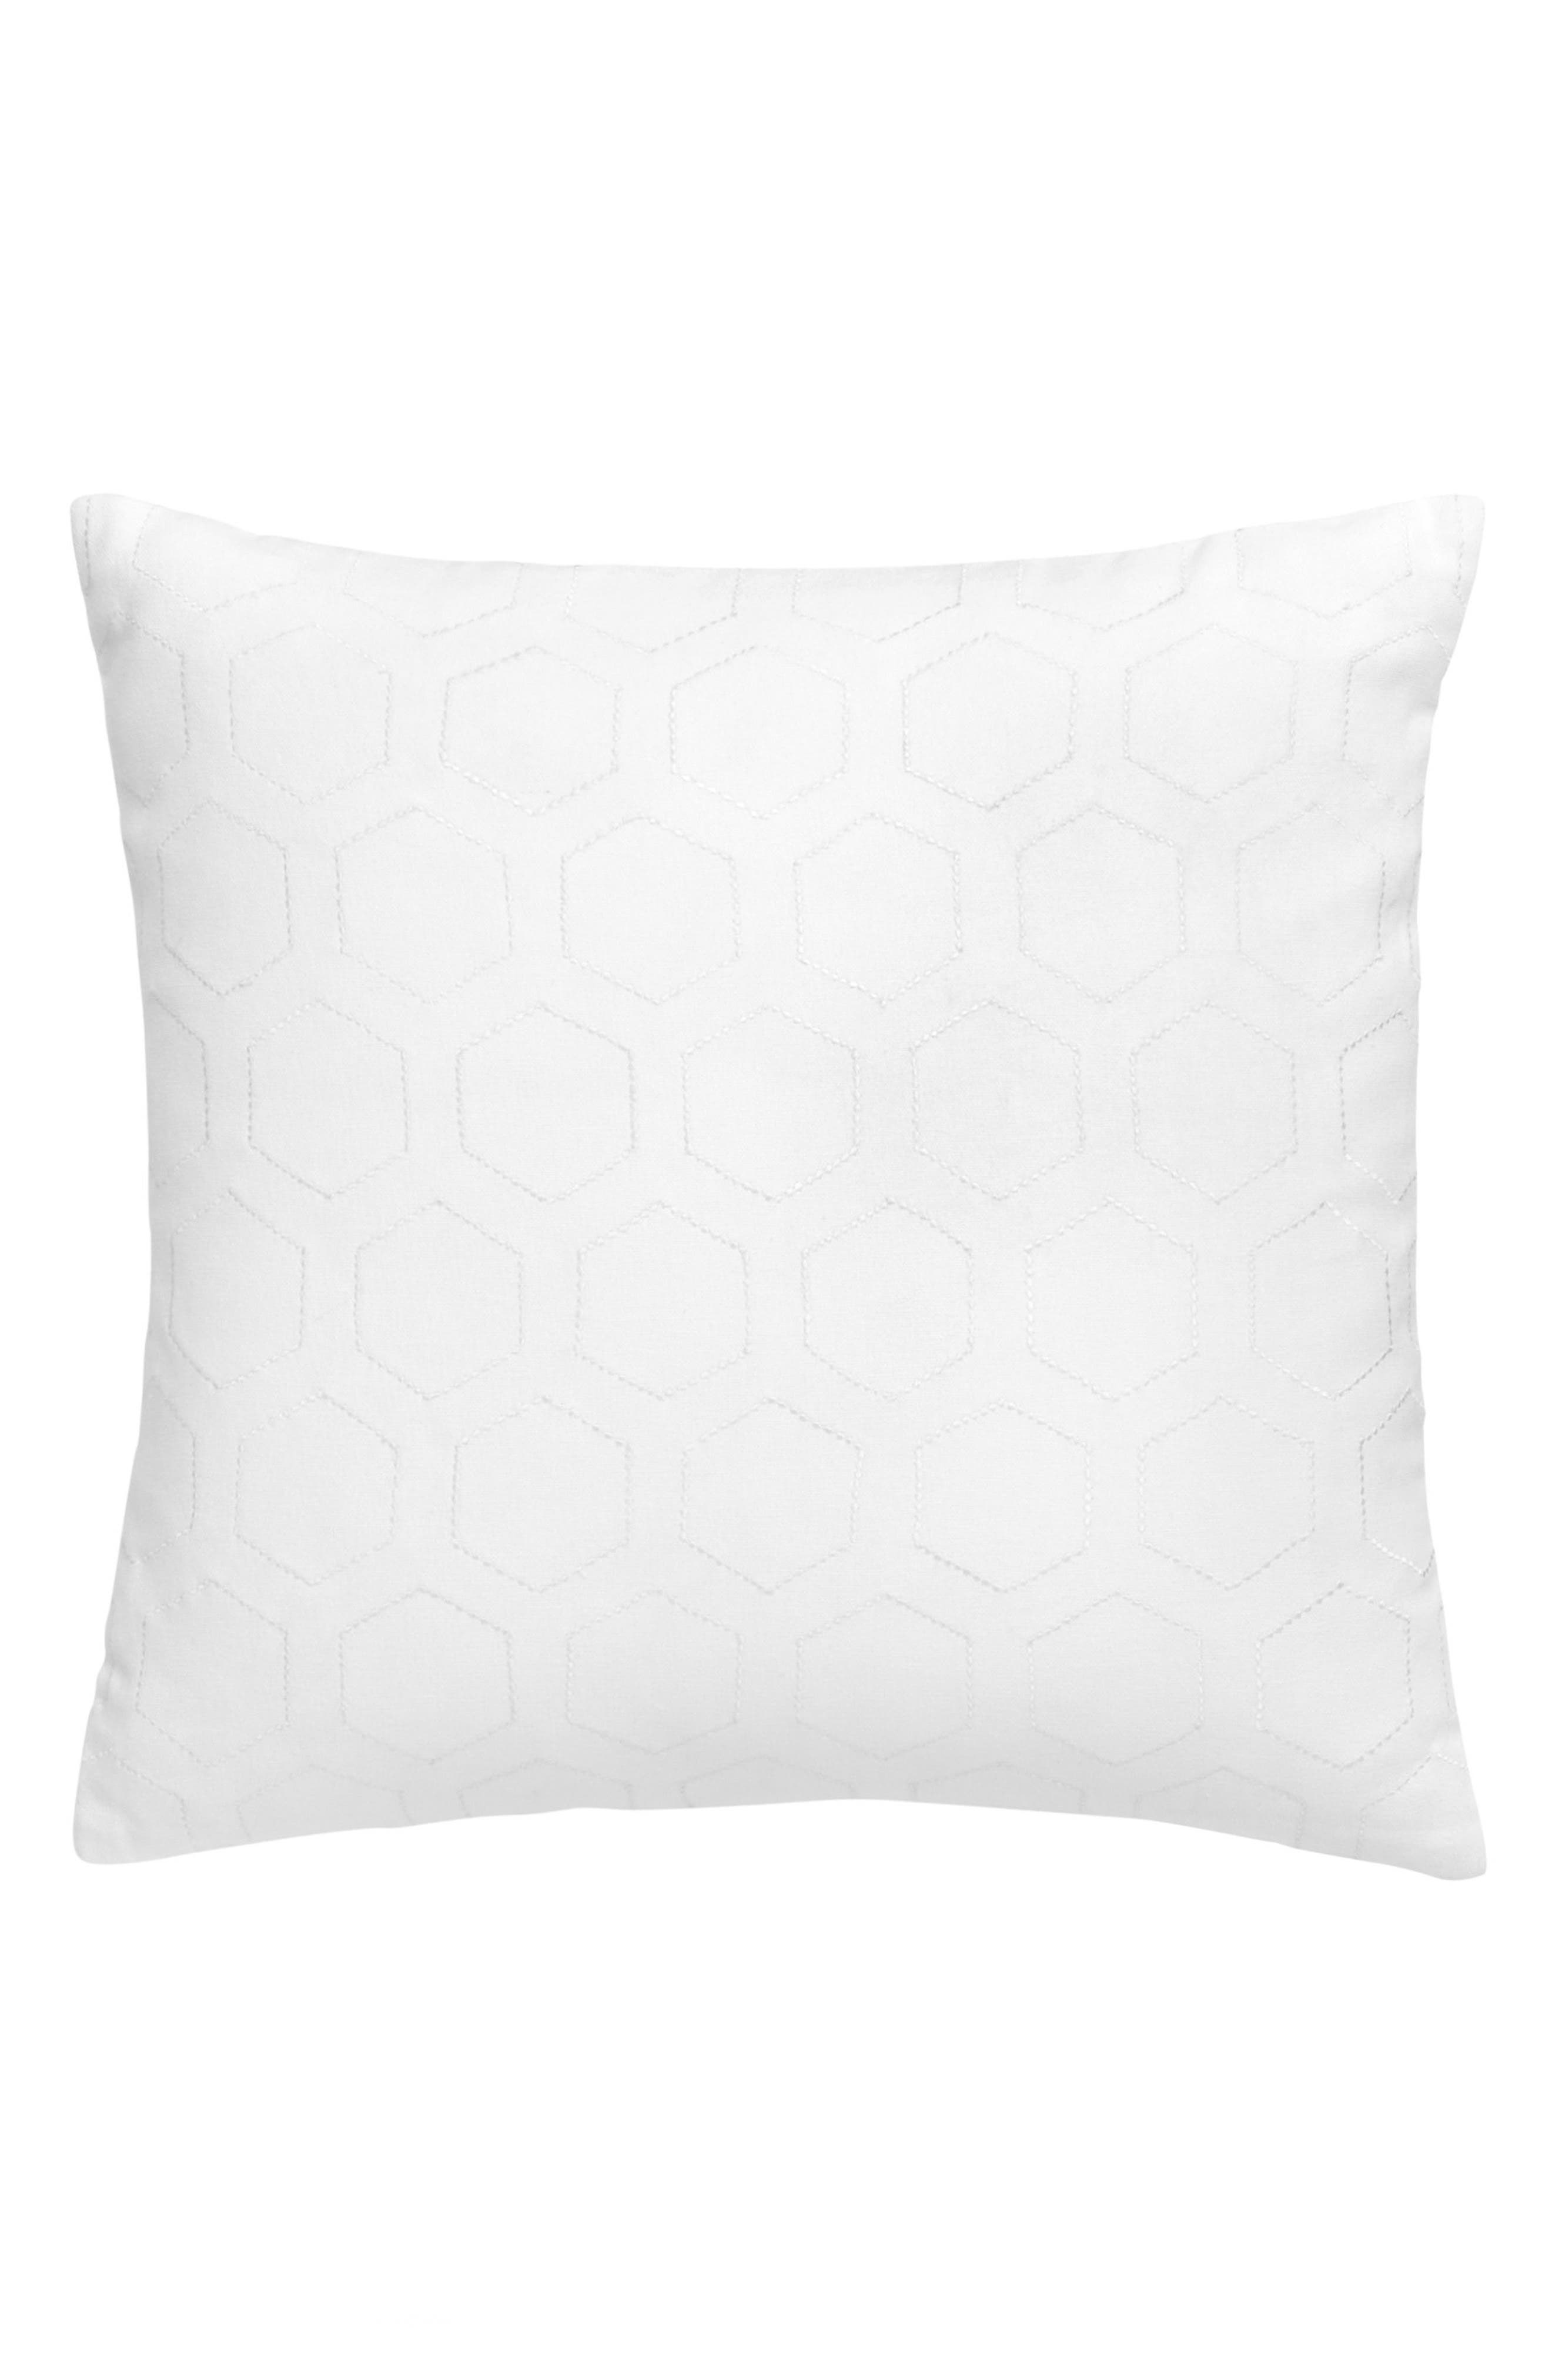 Blackpoint Hex Accent Pillow,                             Main thumbnail 1, color,                             100